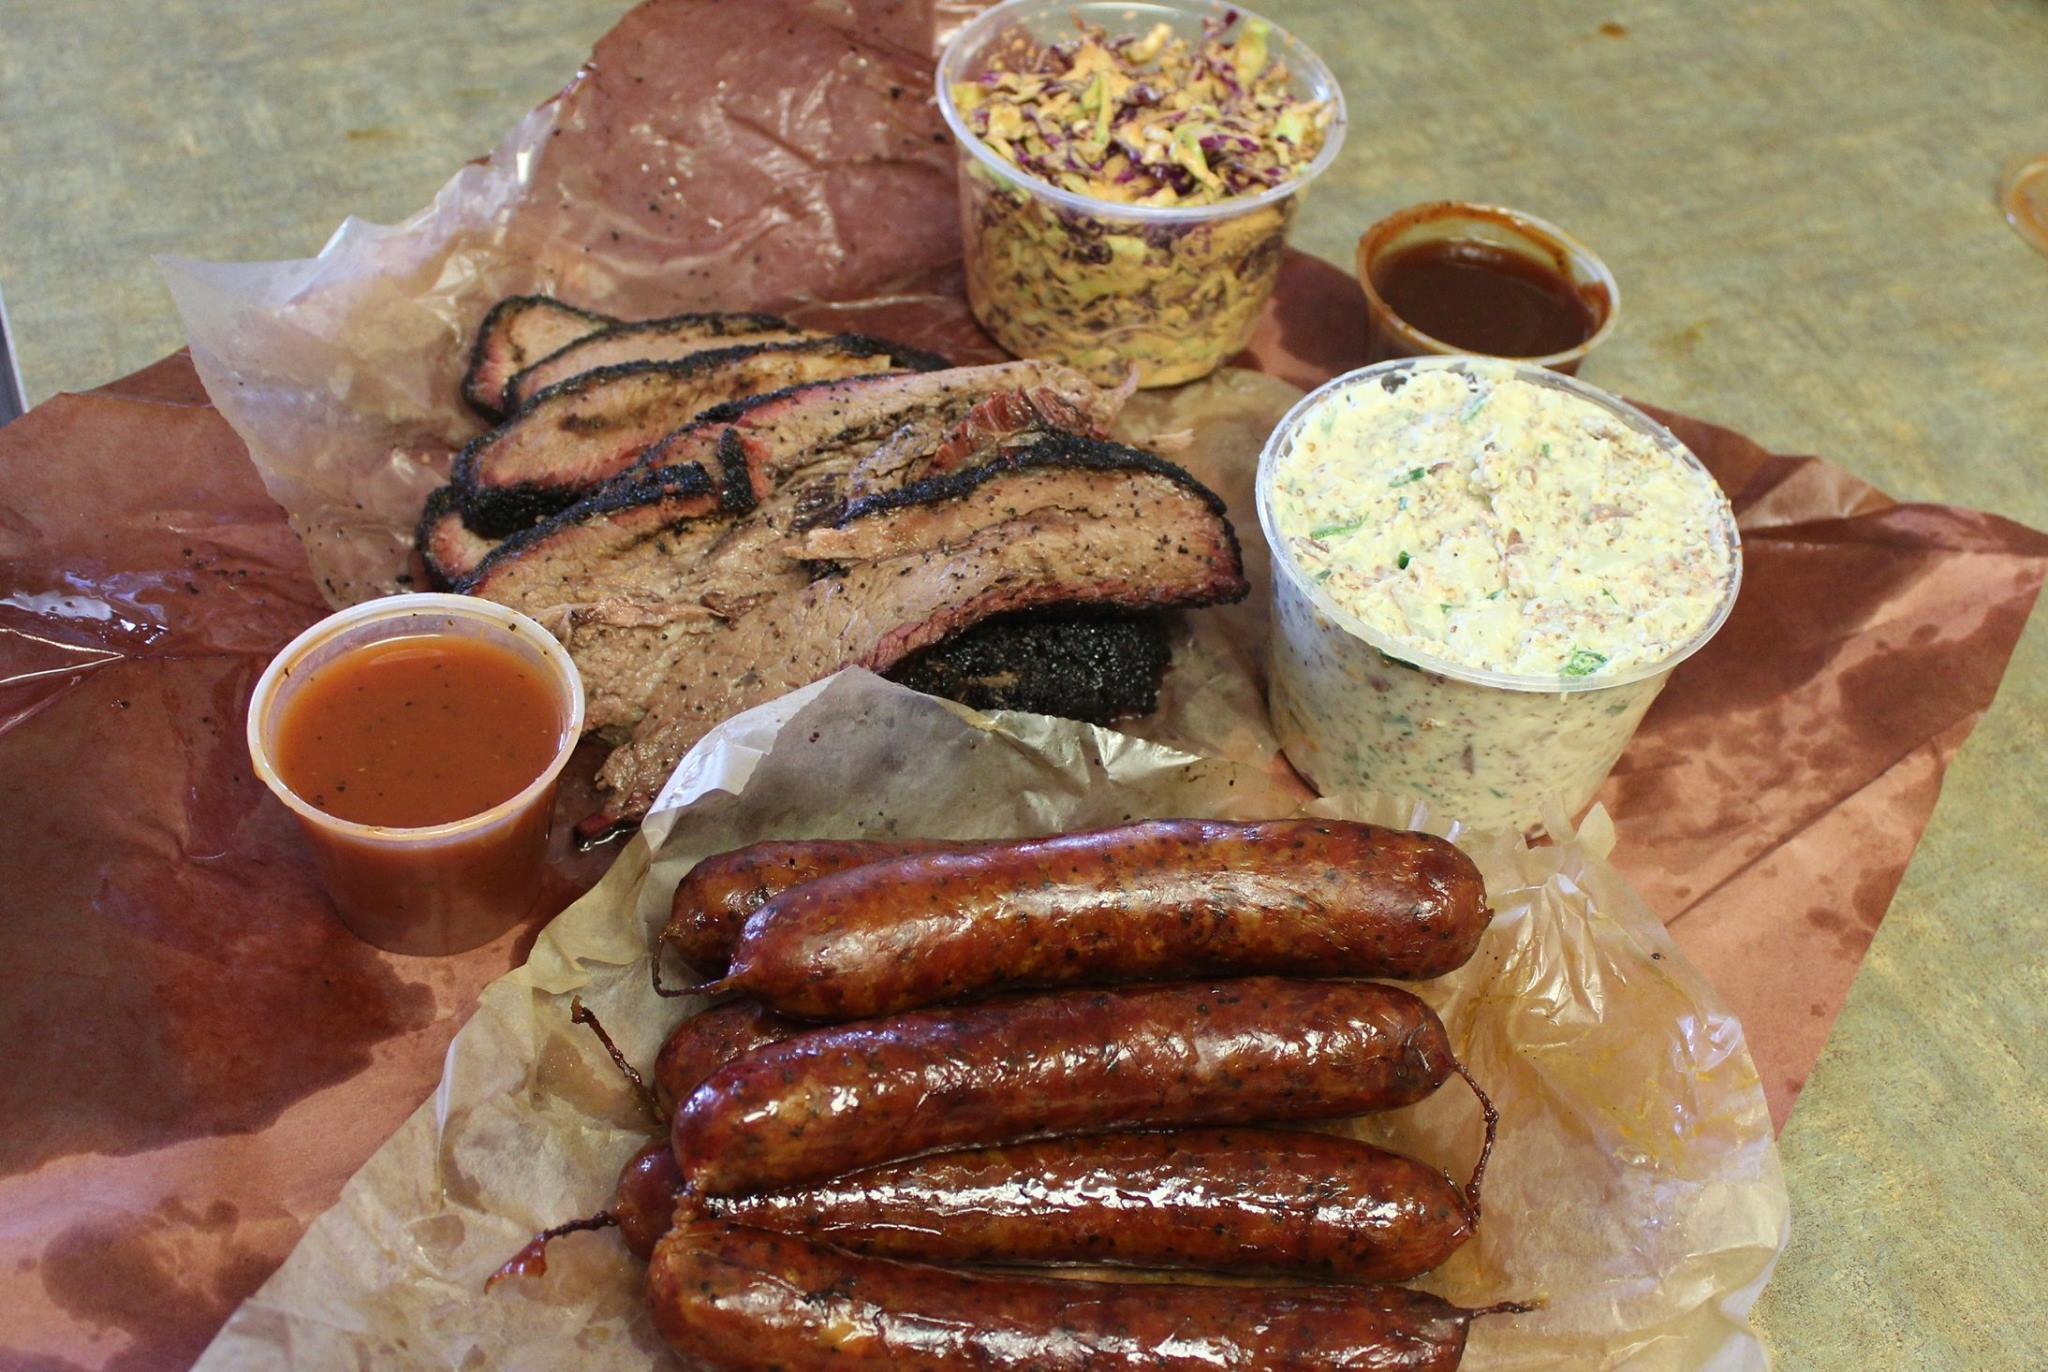 Brisket,sausage, chipotle slaw, potato salad